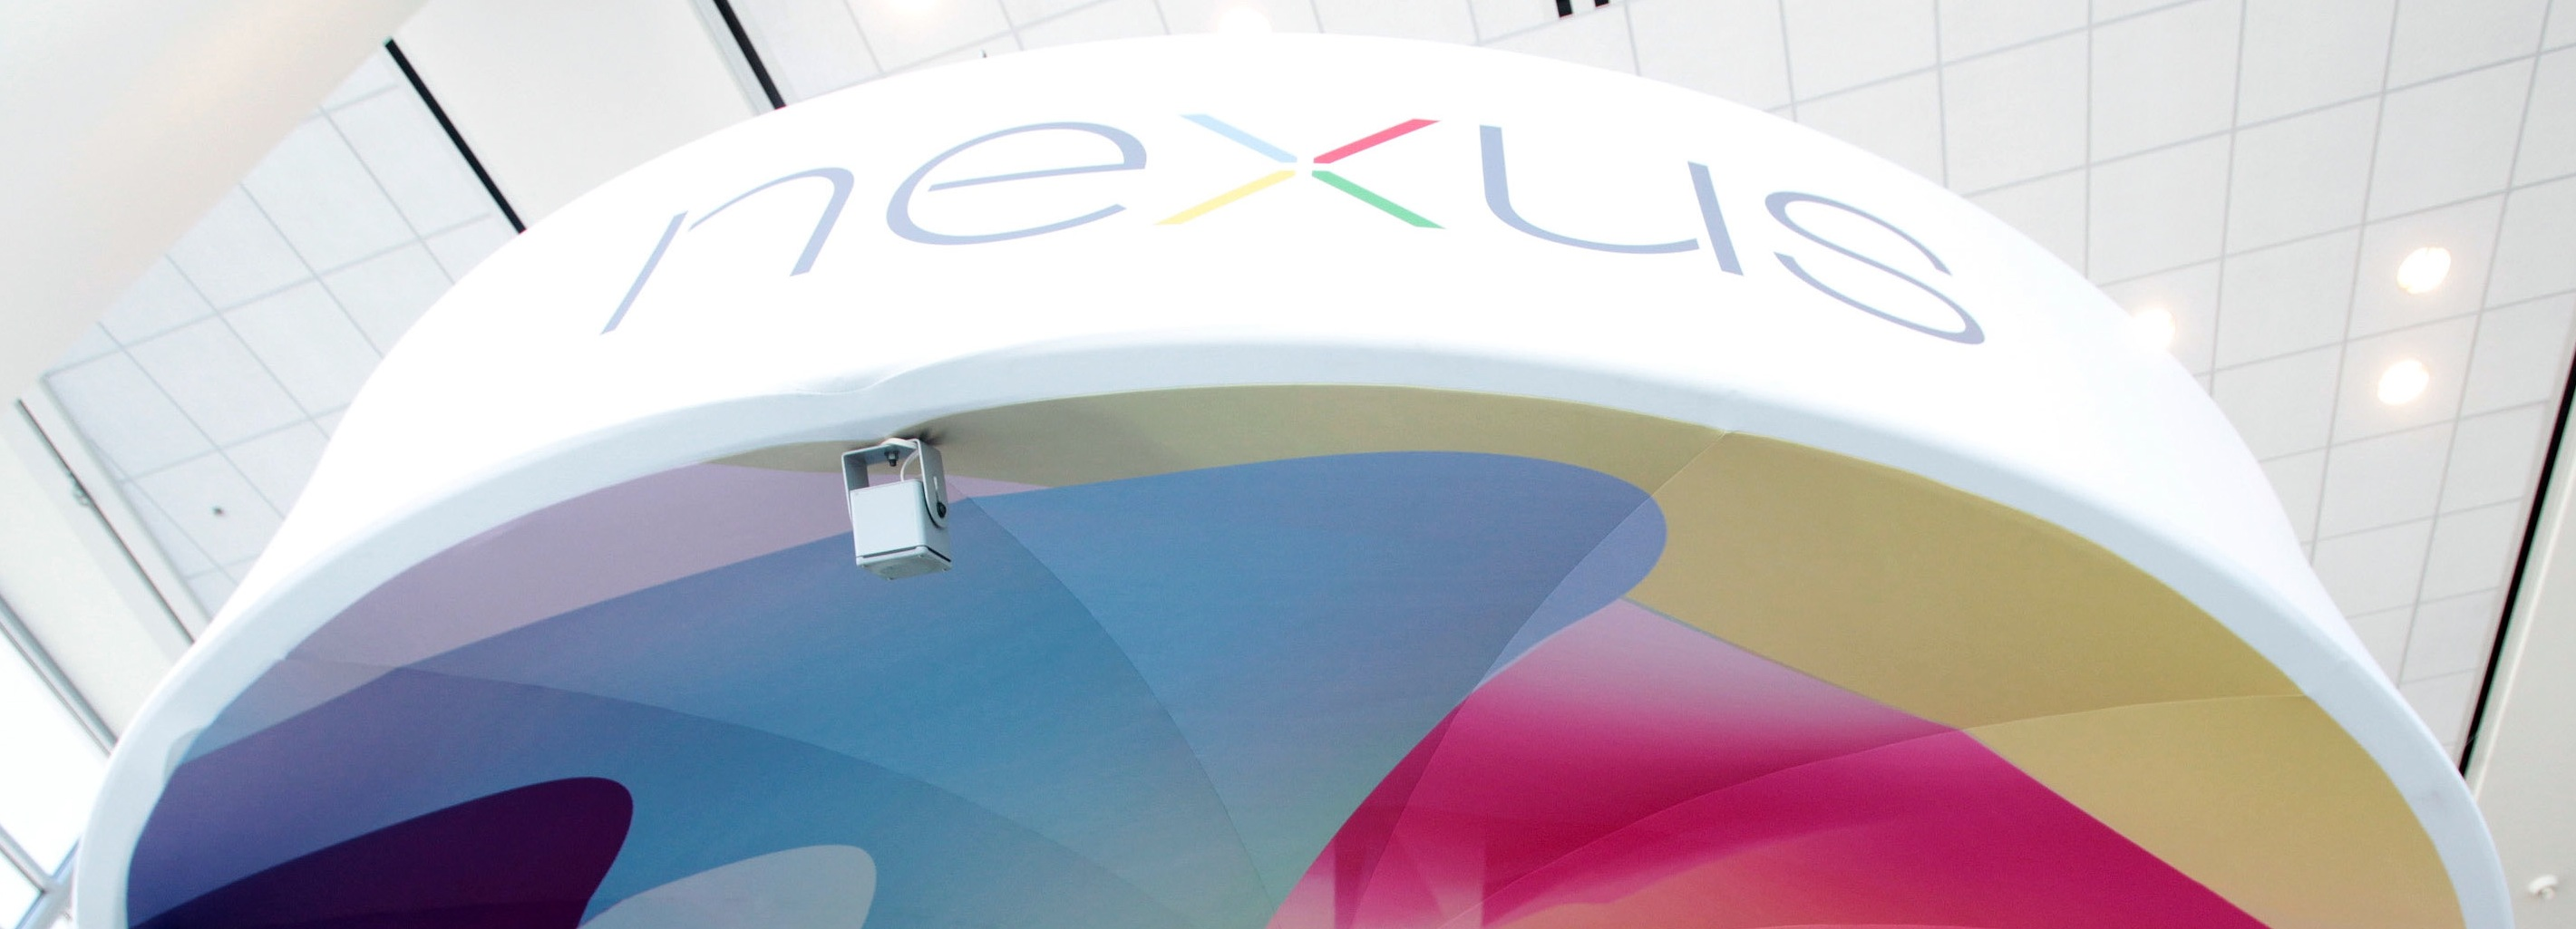 Google doesn't need to make next Nexus phone